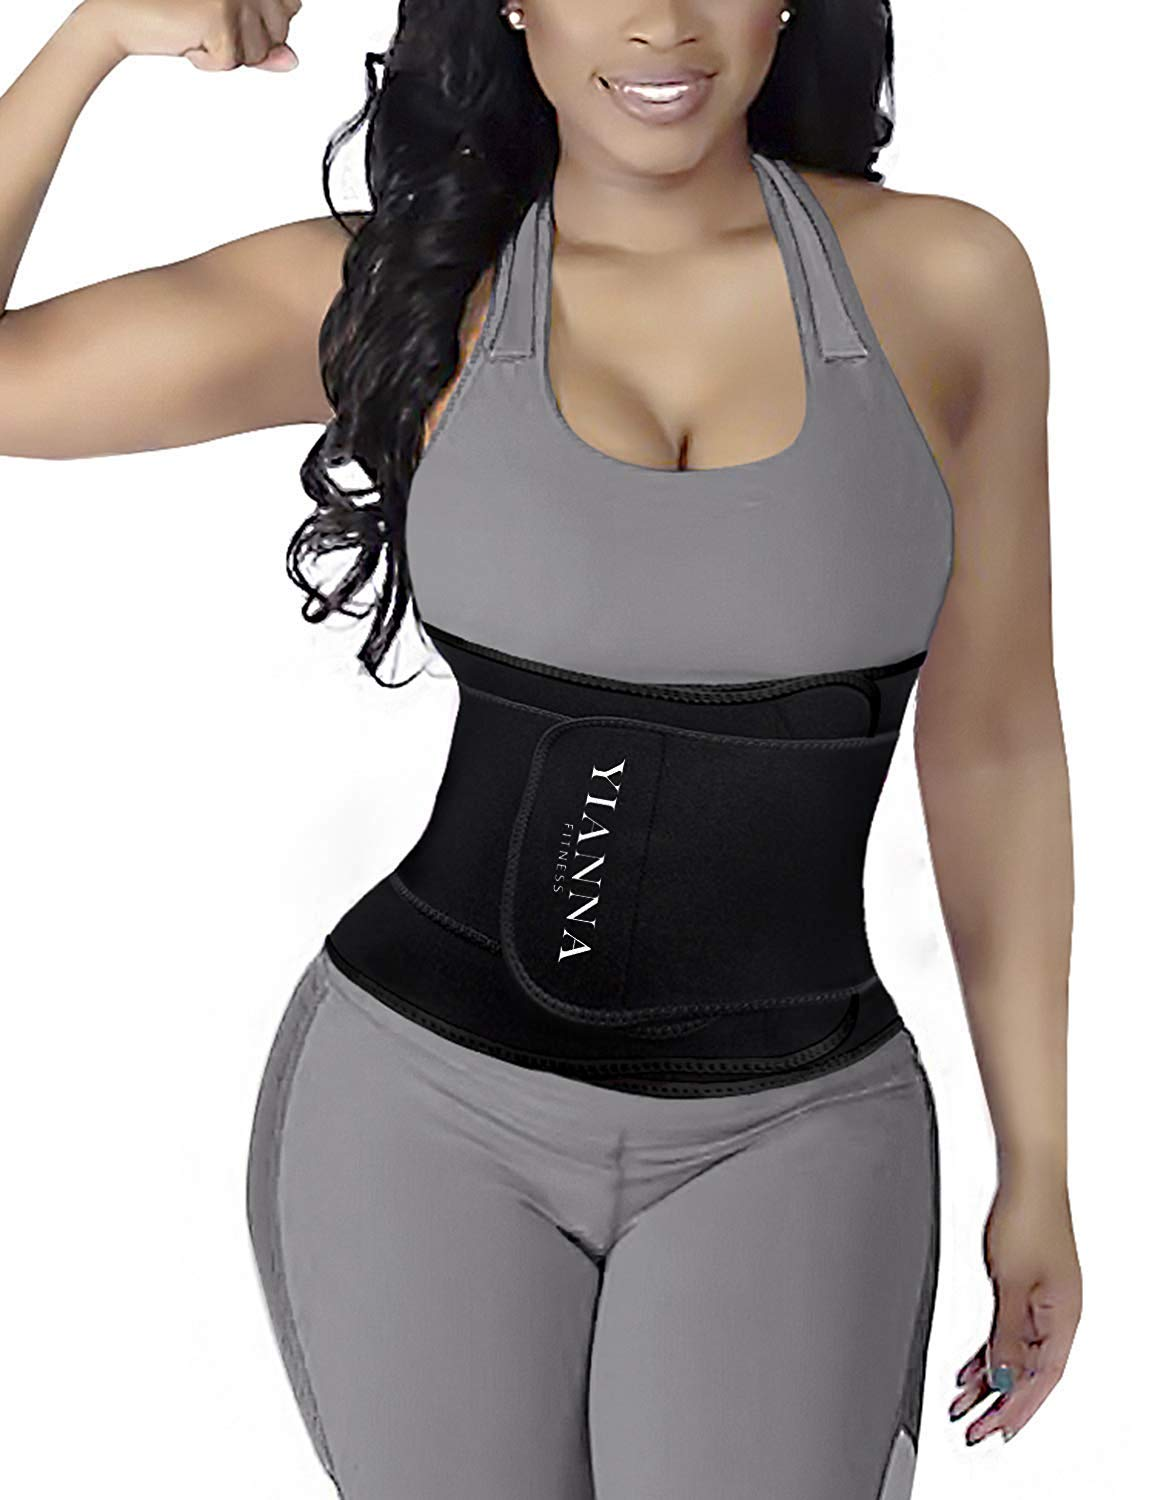 YIANNA Waist Trainer Slimming Body Shaper Belt - Sport Girdle Waist Eraser Trimmer Compression Belly Weight Loss Fitness Tummy Control, YA8010-Black-XL